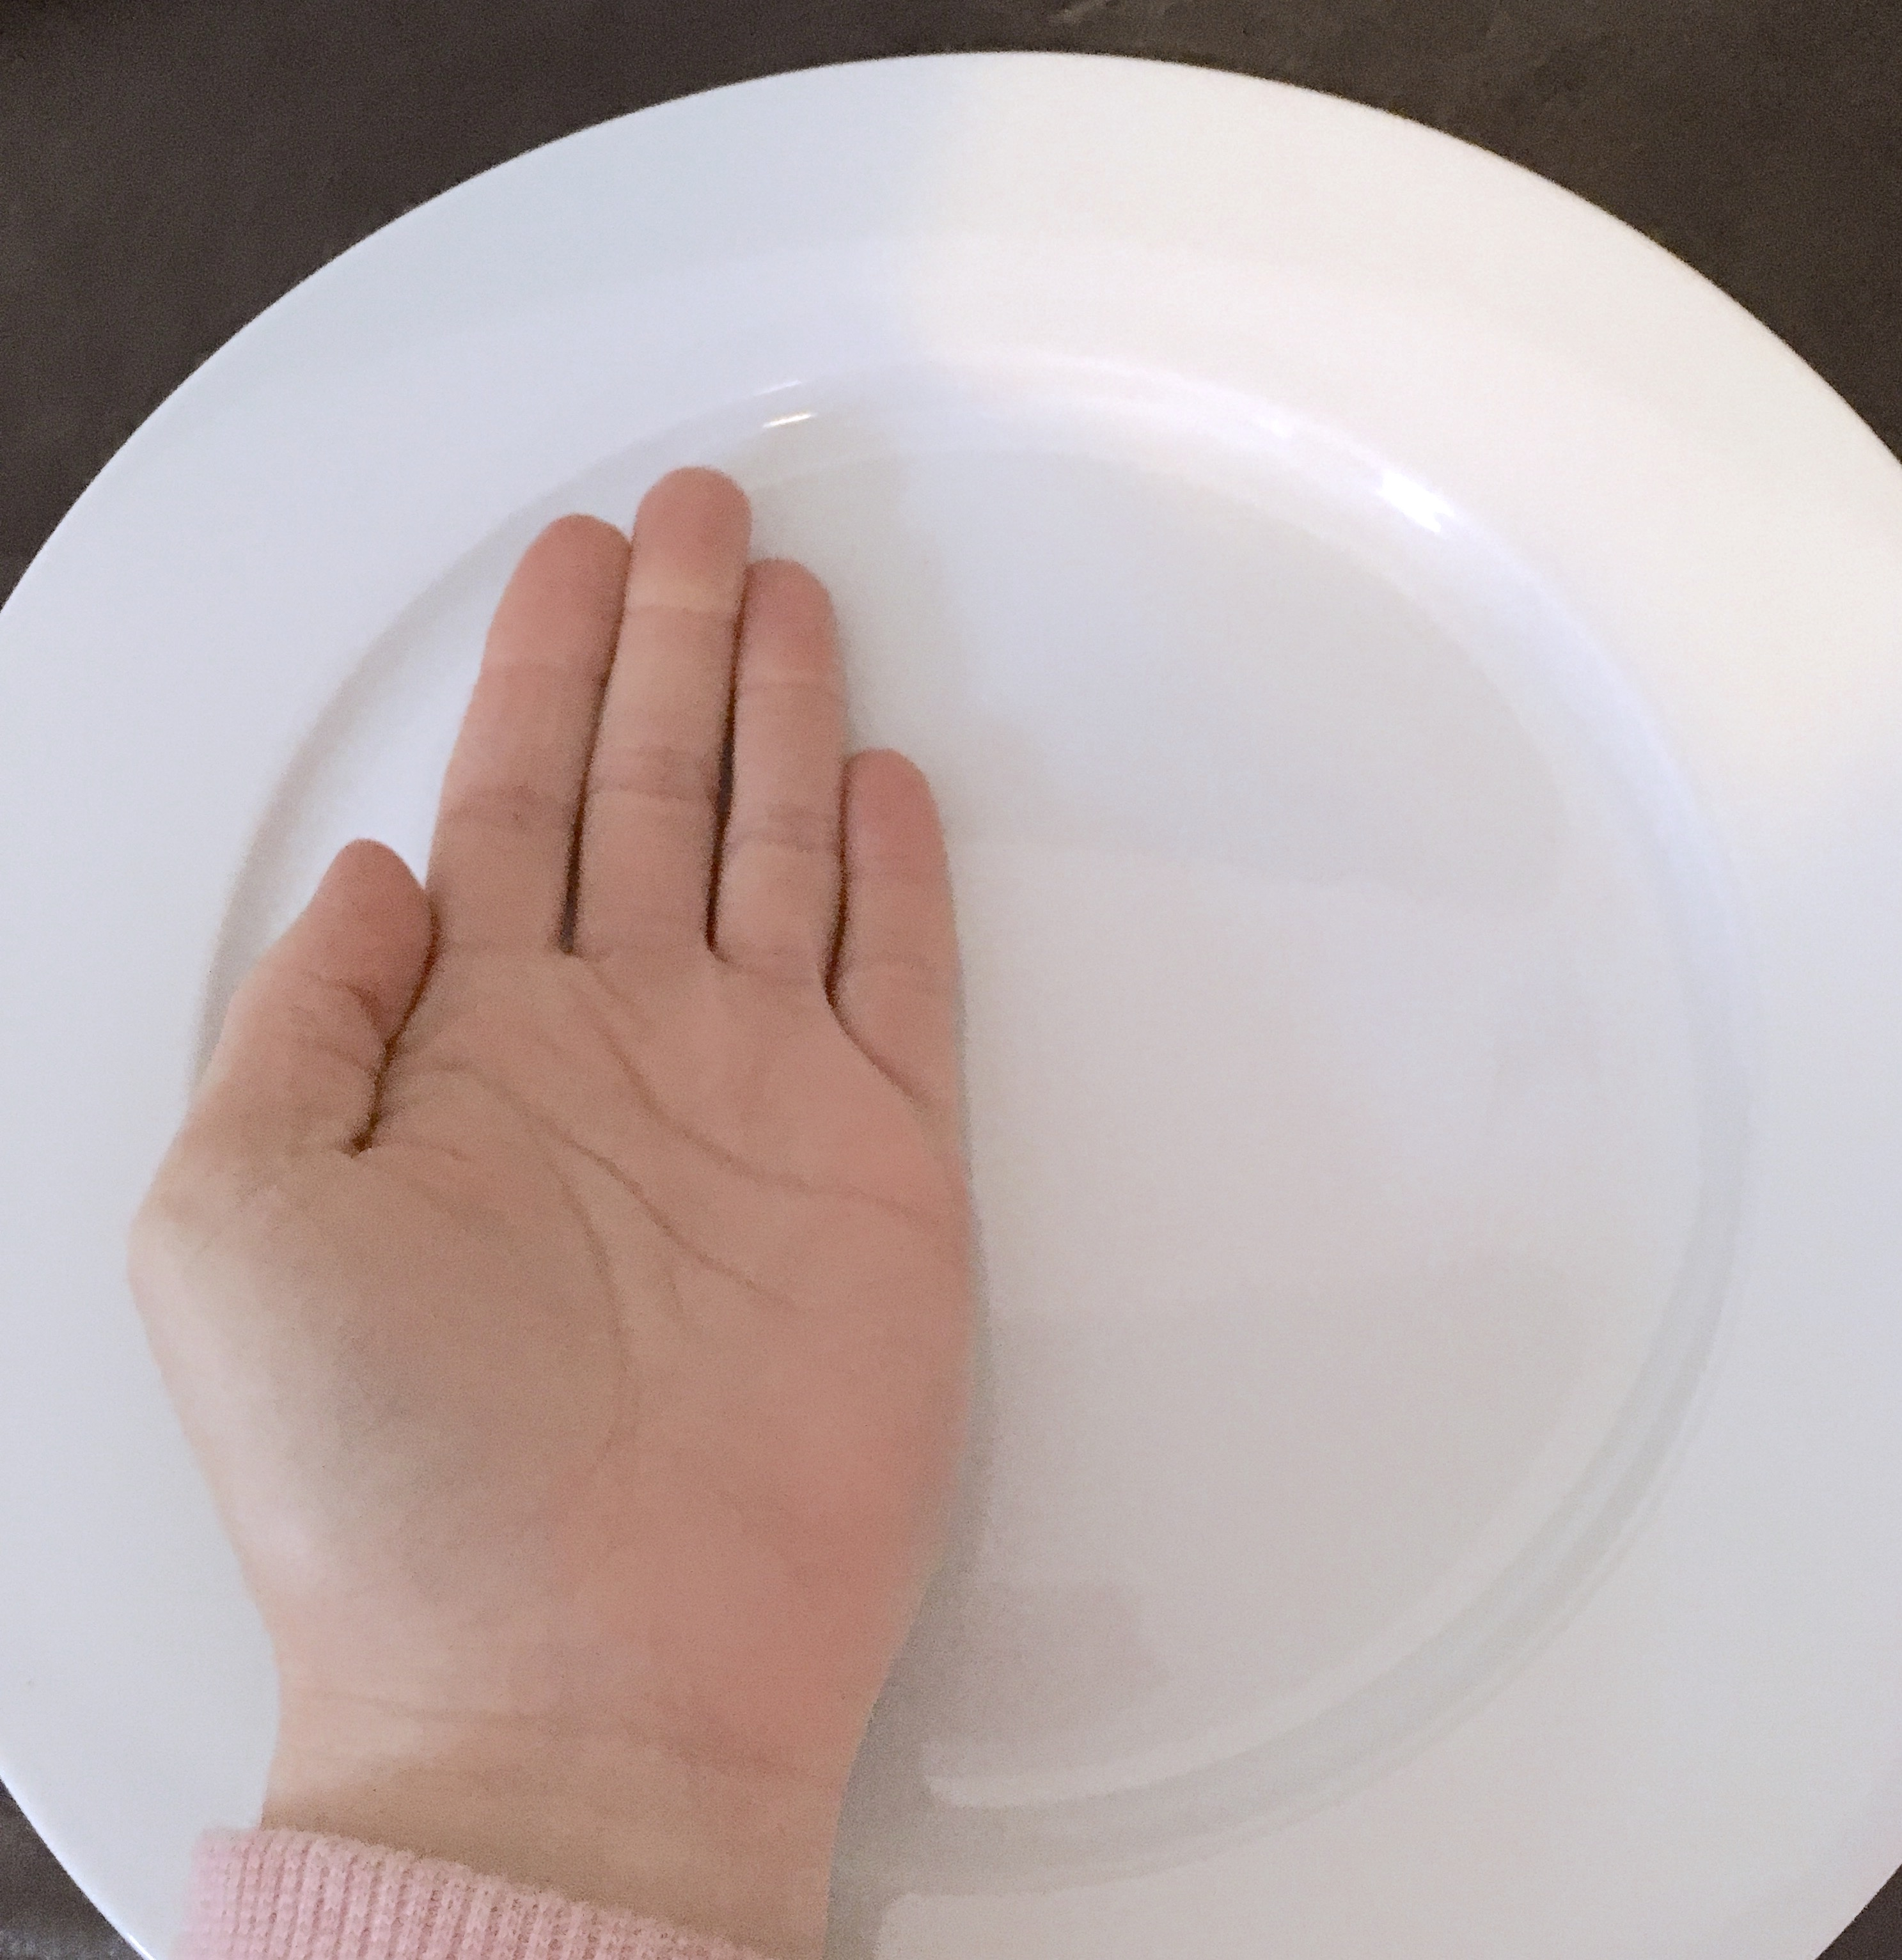 palm of protein